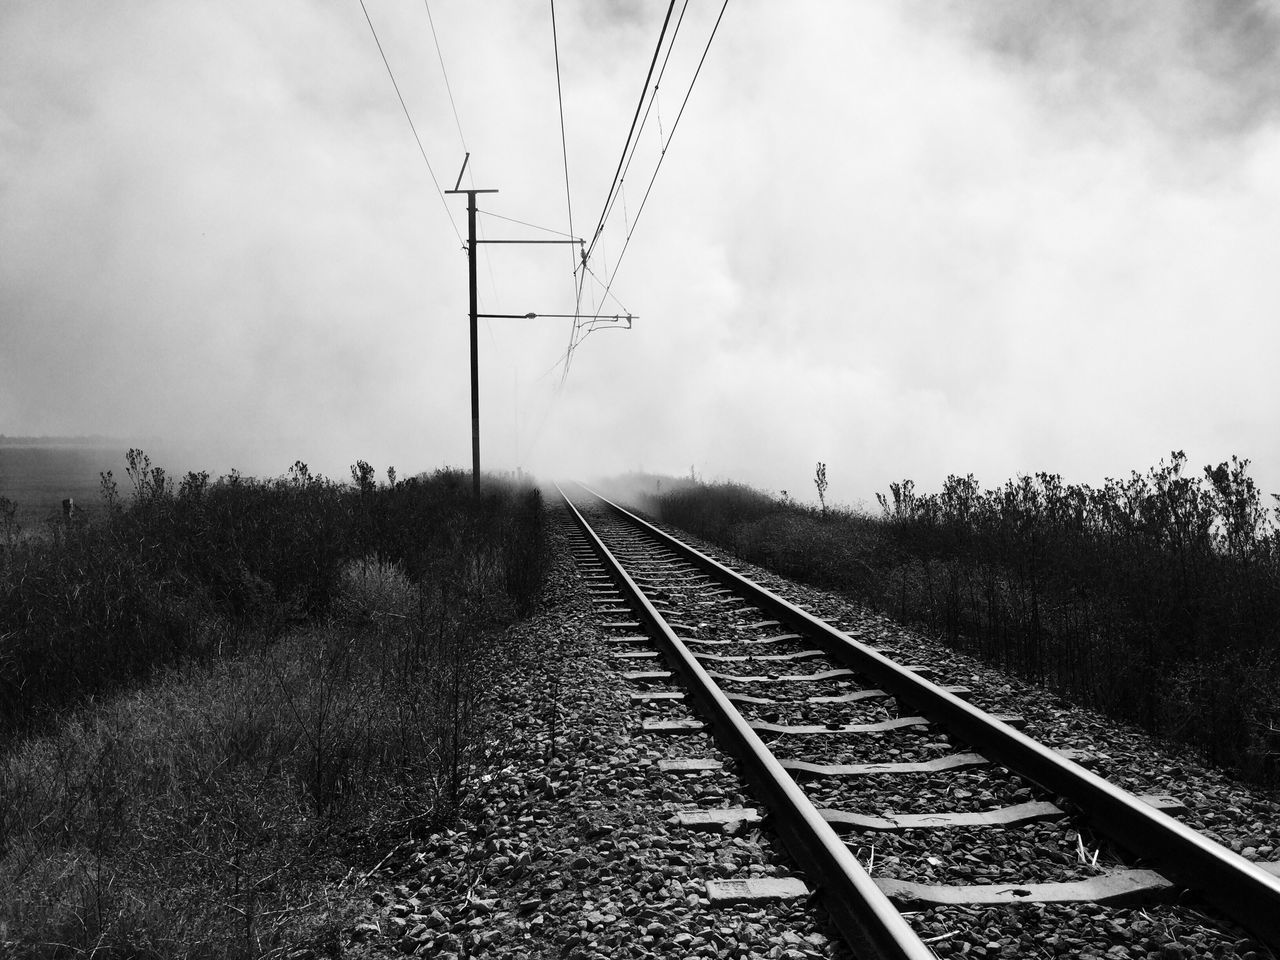 Smoke over a train track Smoke Fire Train Tracks Iphonephotography Amateurphotography Amateur Shot Railroad Track Black And White Day The Way Forward Outdoors